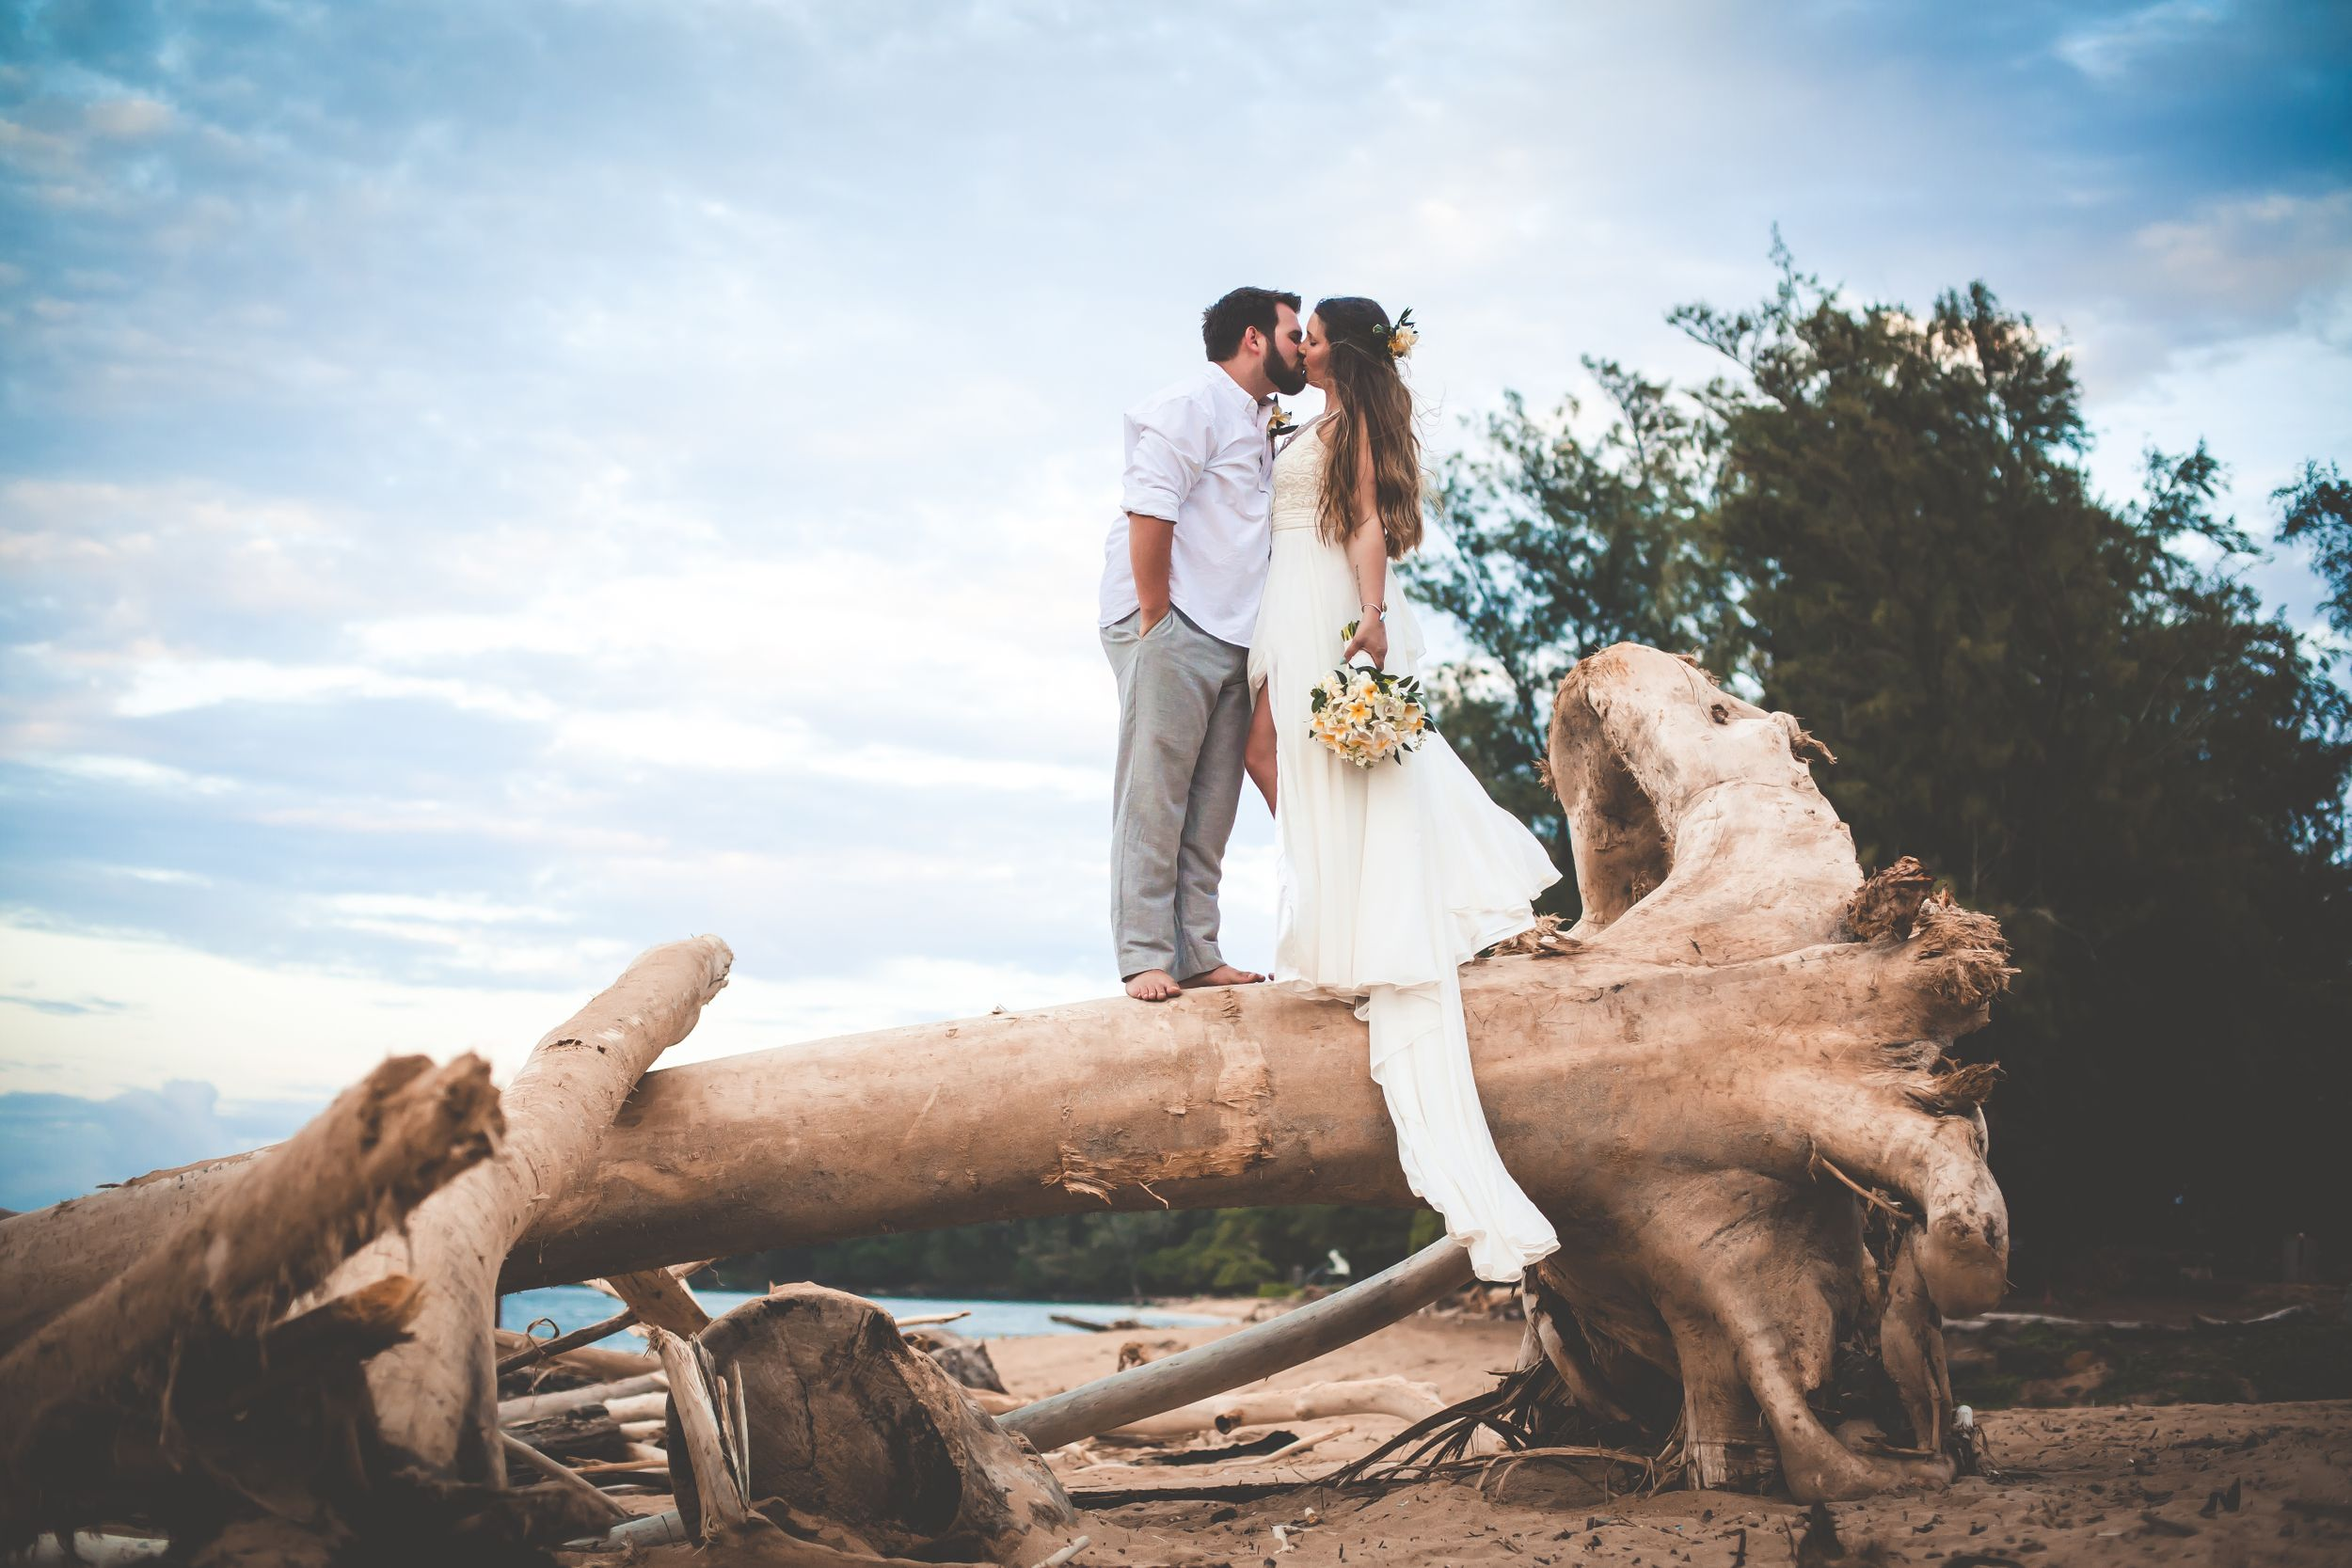 Photo of a bride and groom standing on a large fallen tree on the beach and kissing each other.